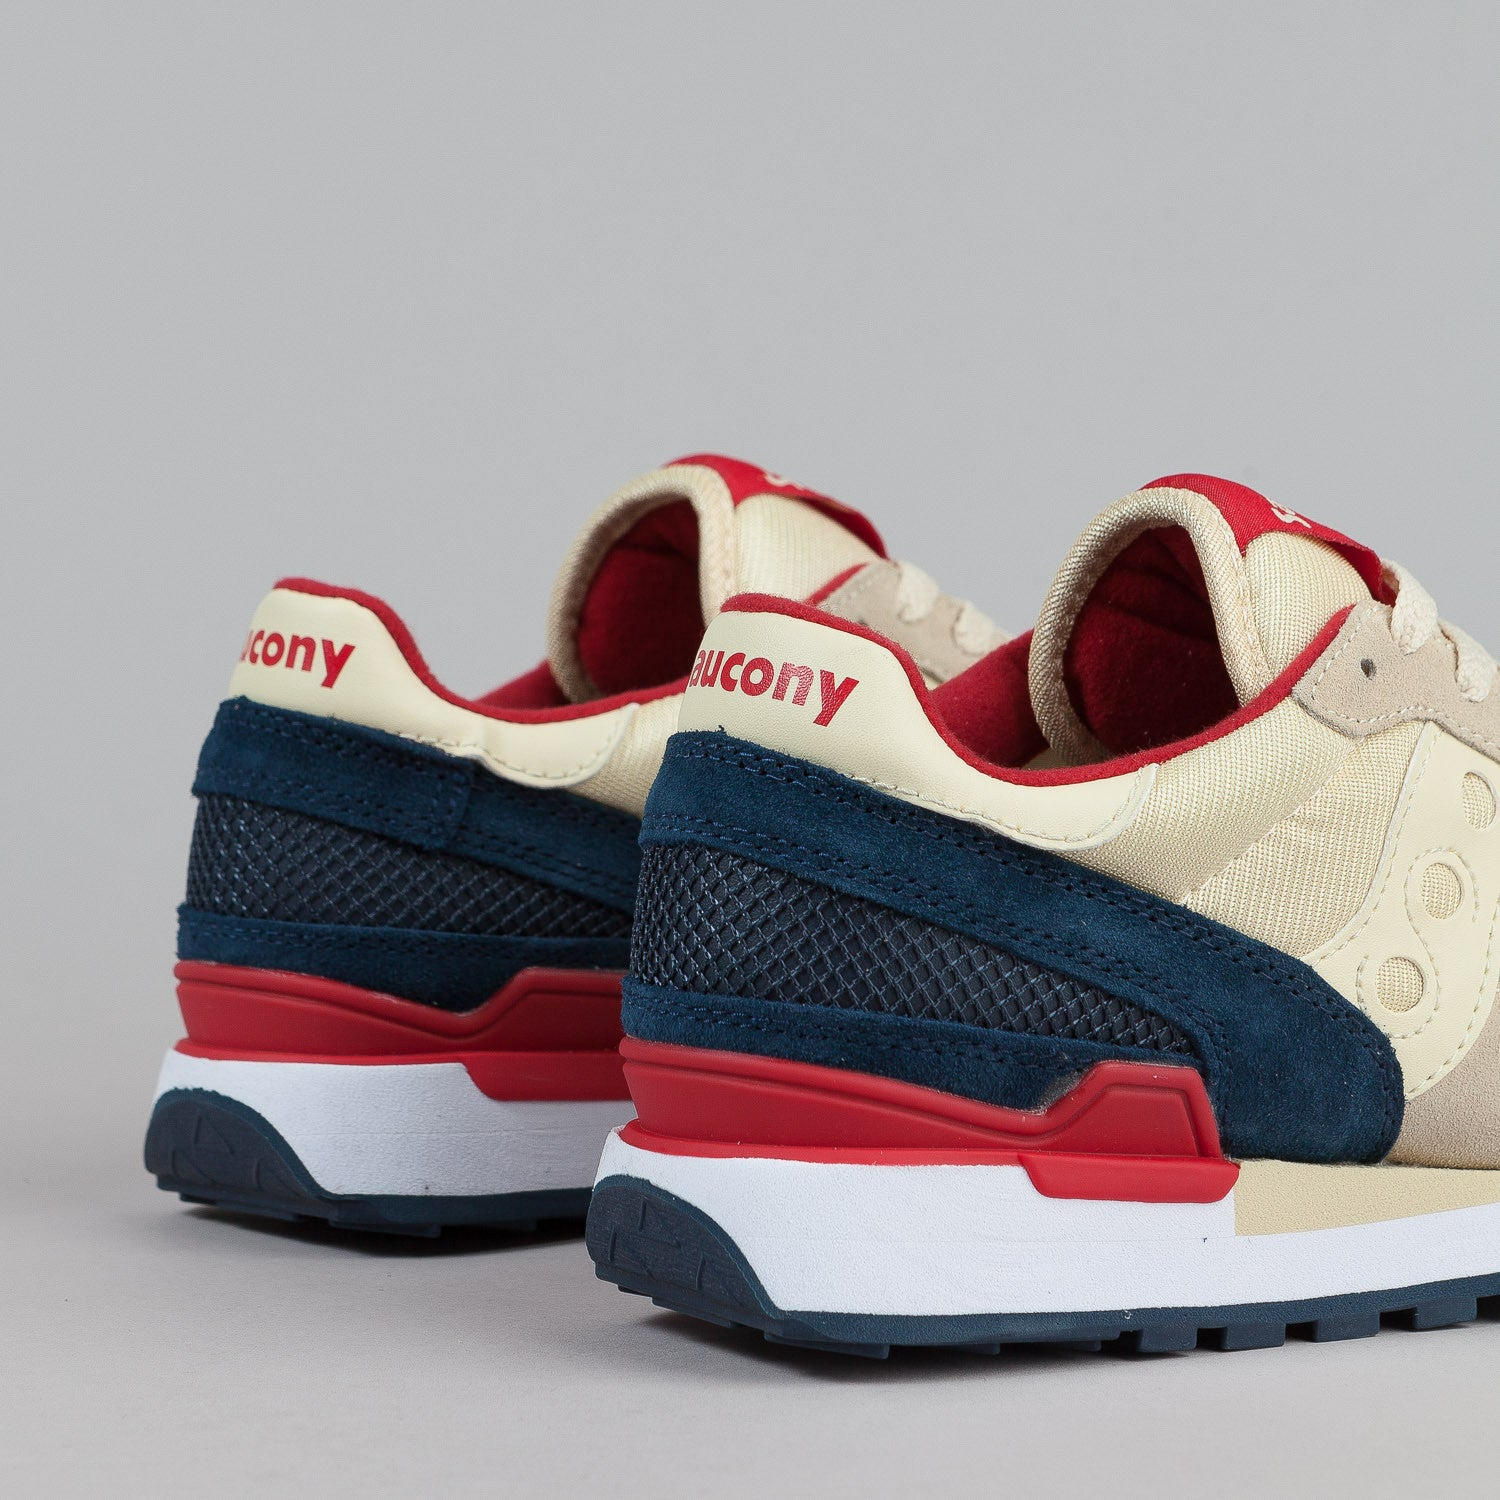 Saucony Shadow Original Shoes - Cream / Navy